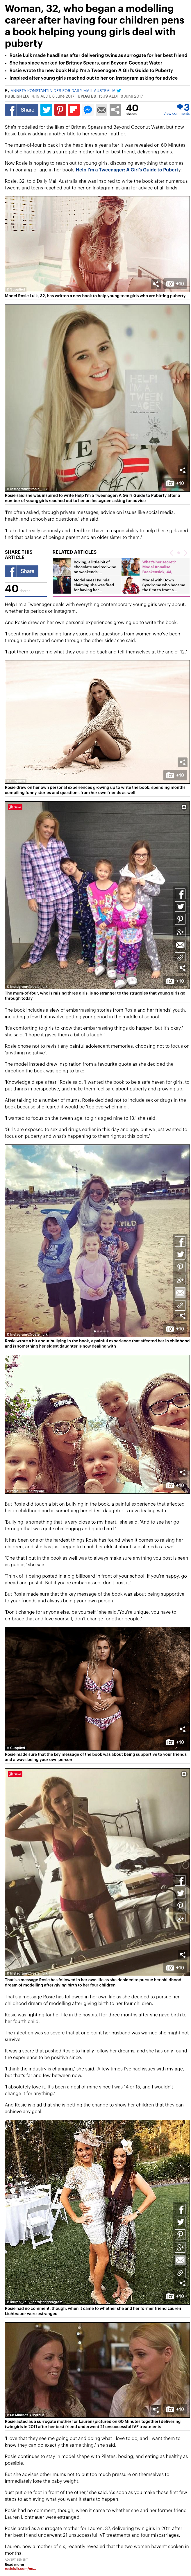 Daily Mail AU | Rosie Luik pens book helping girls dea_ - https___www.dailymail.co.uk_femail.png